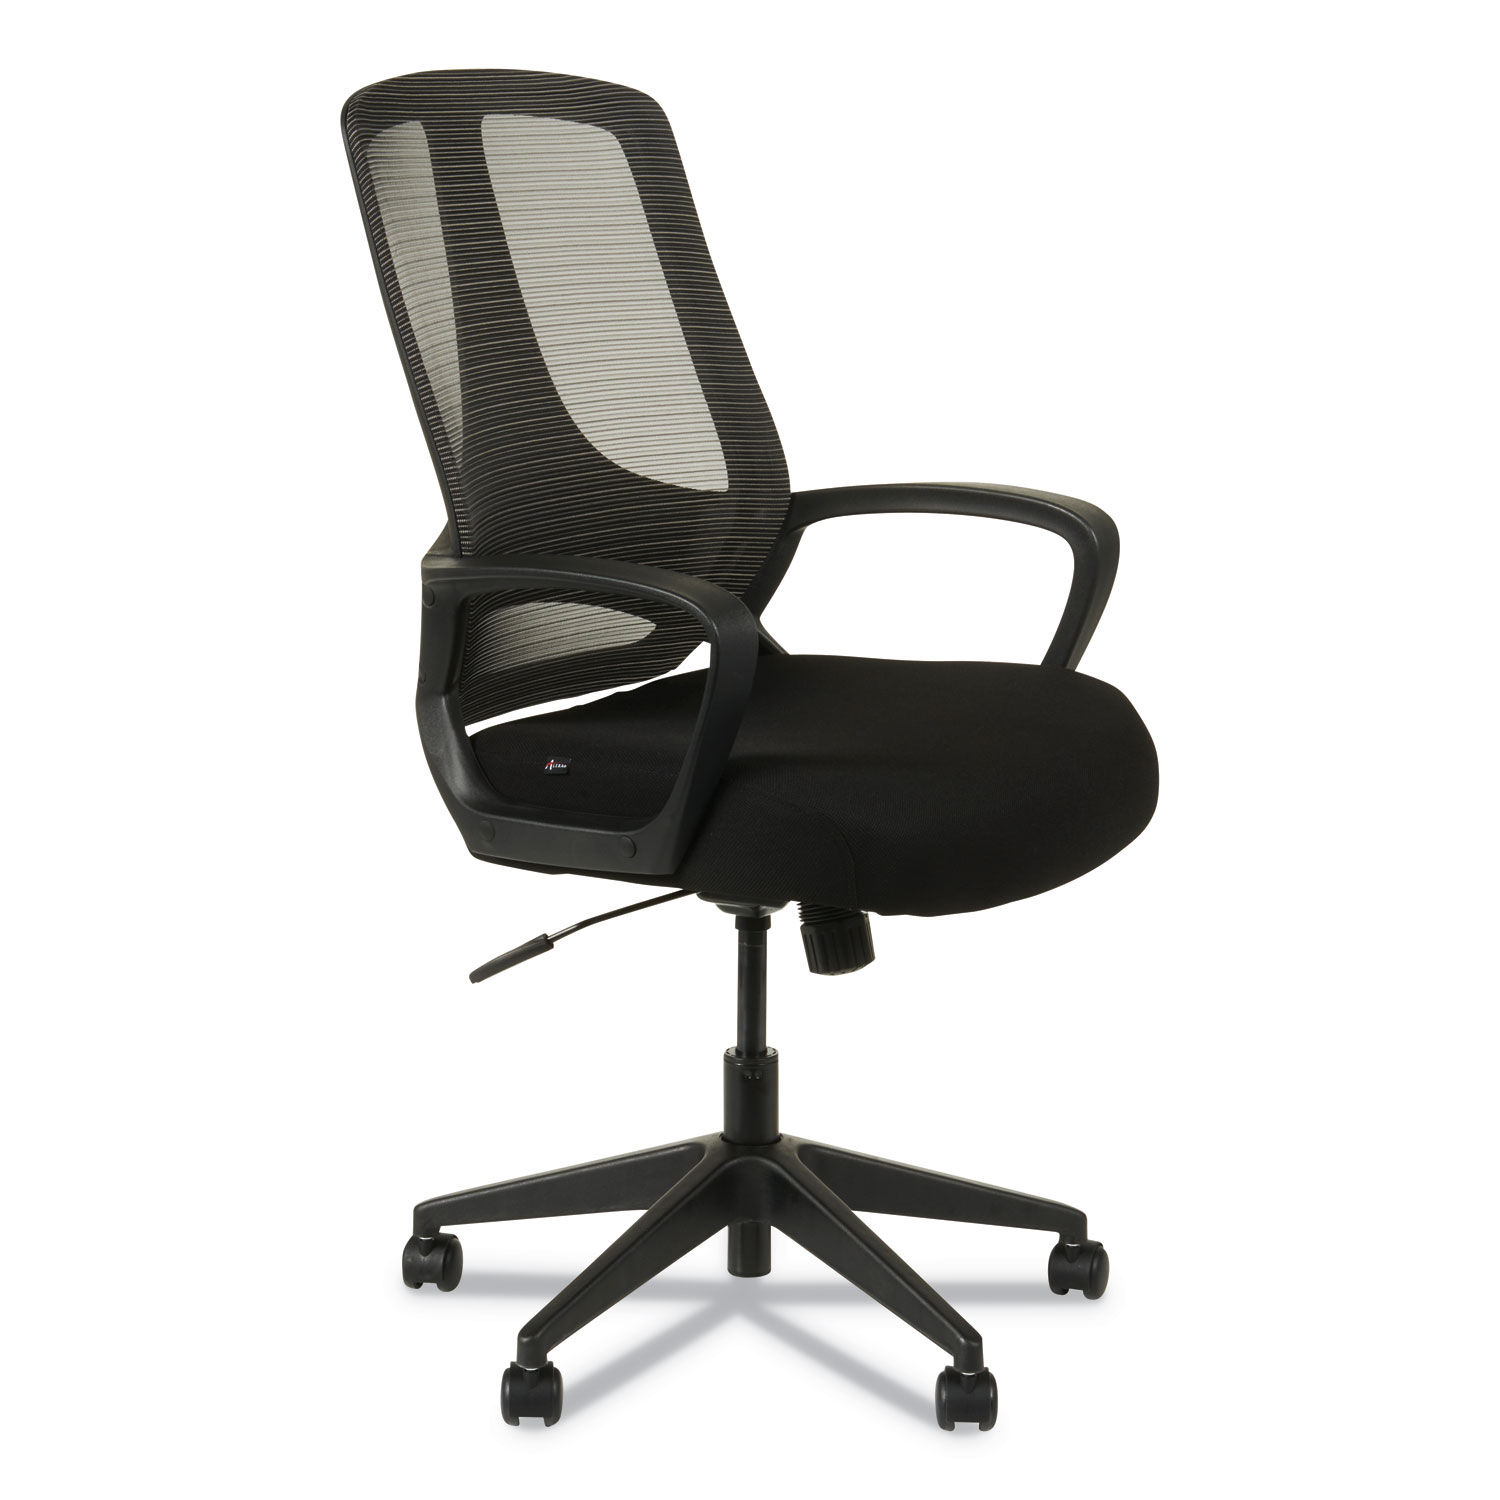 Alera Mb Series Mesh Mid Back Office Chair Supports Up To 275 Lbs Black Seat Black Back Black Base